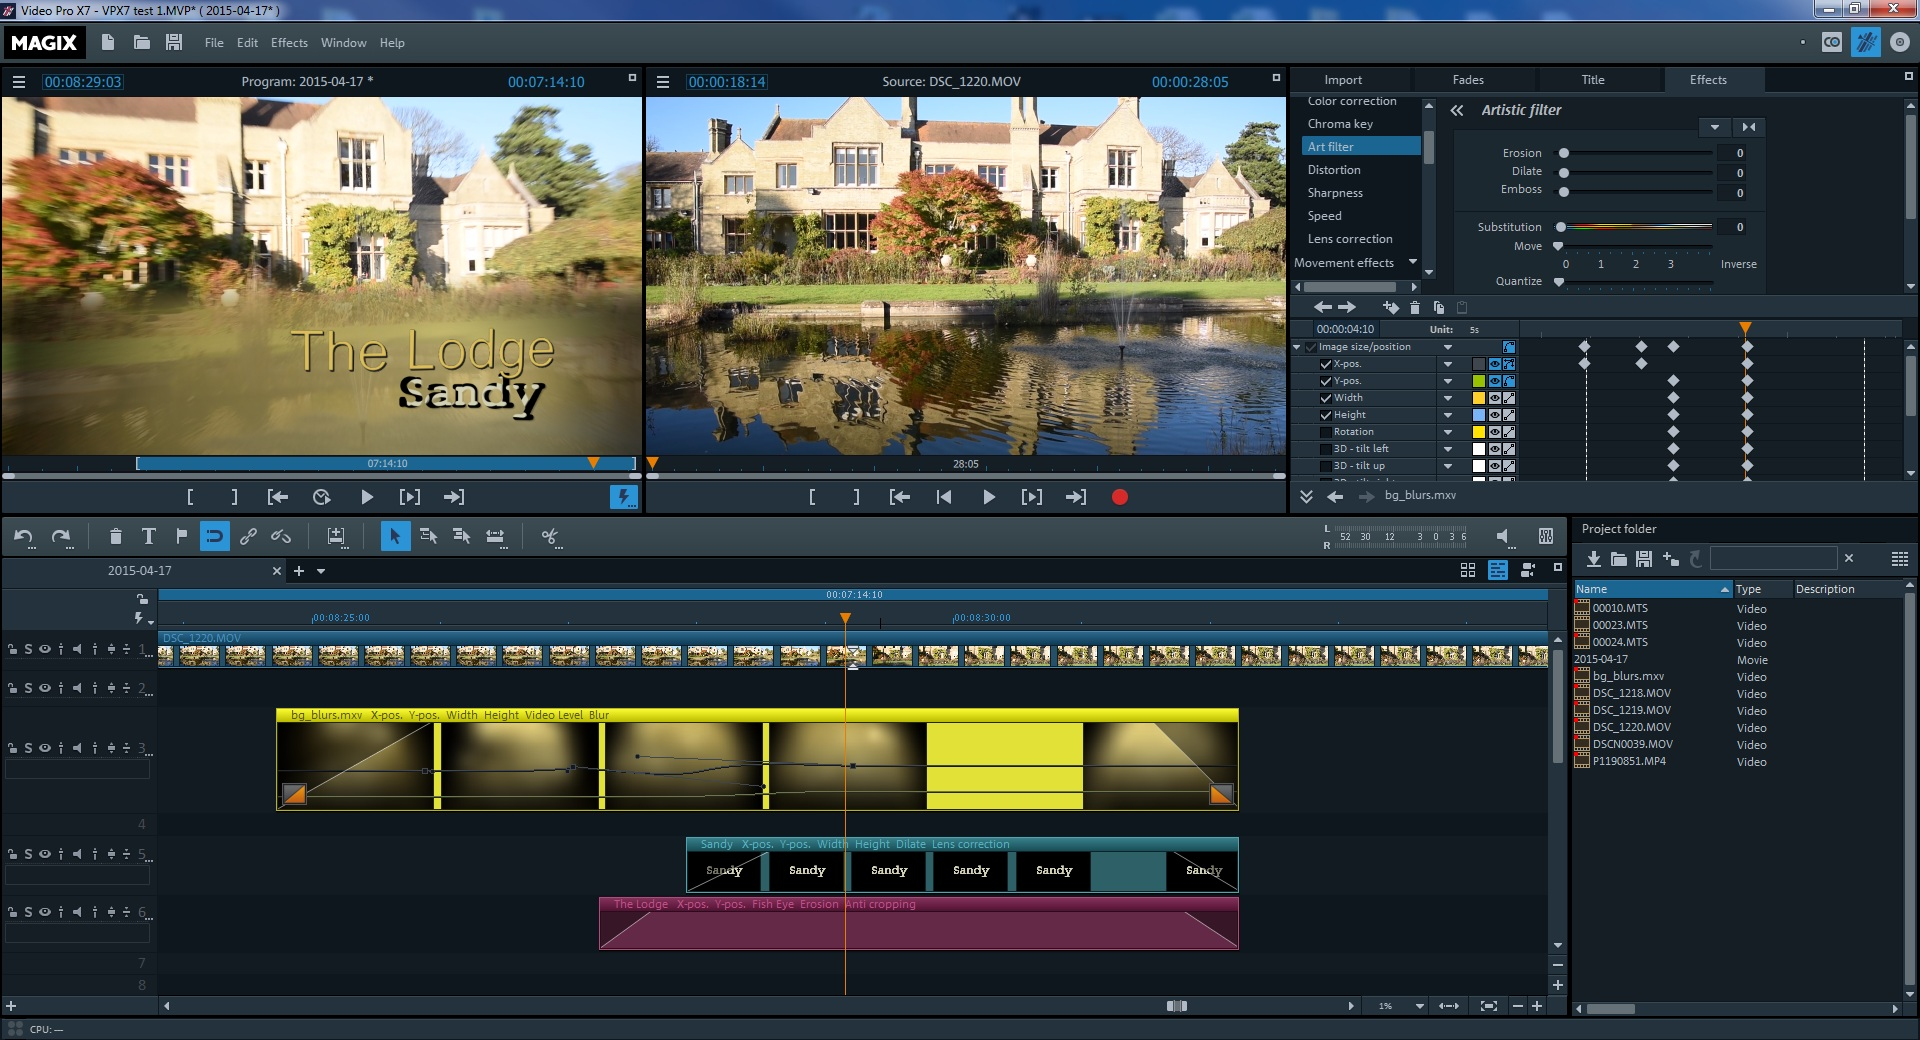 Magix video pro x learn more30 day free trial